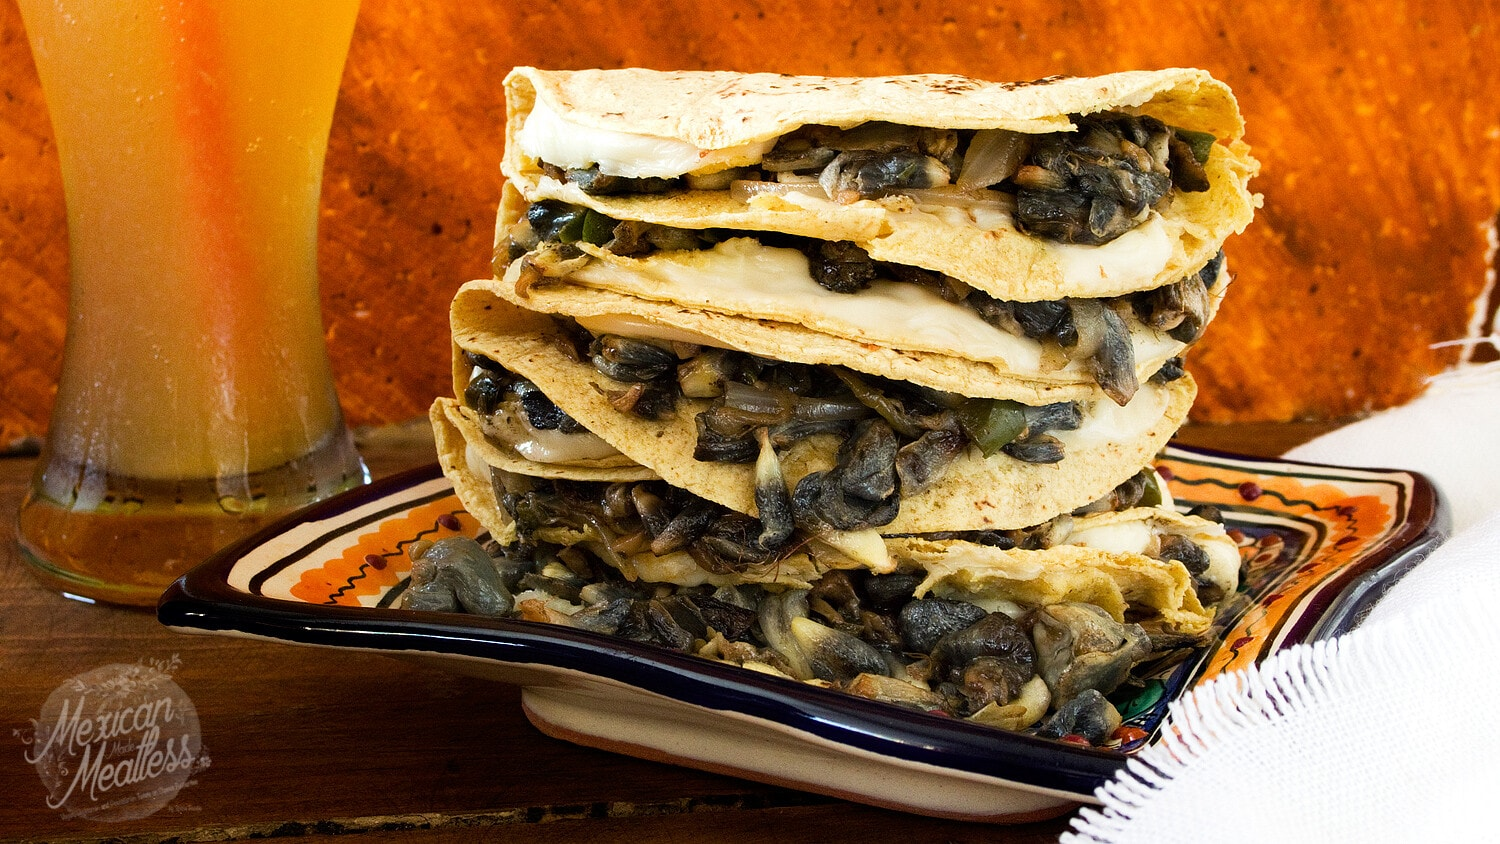 Corn Truffle Quesadillas Quesadillas De Huitlacoche Video Recipe Mexican Made Meatless